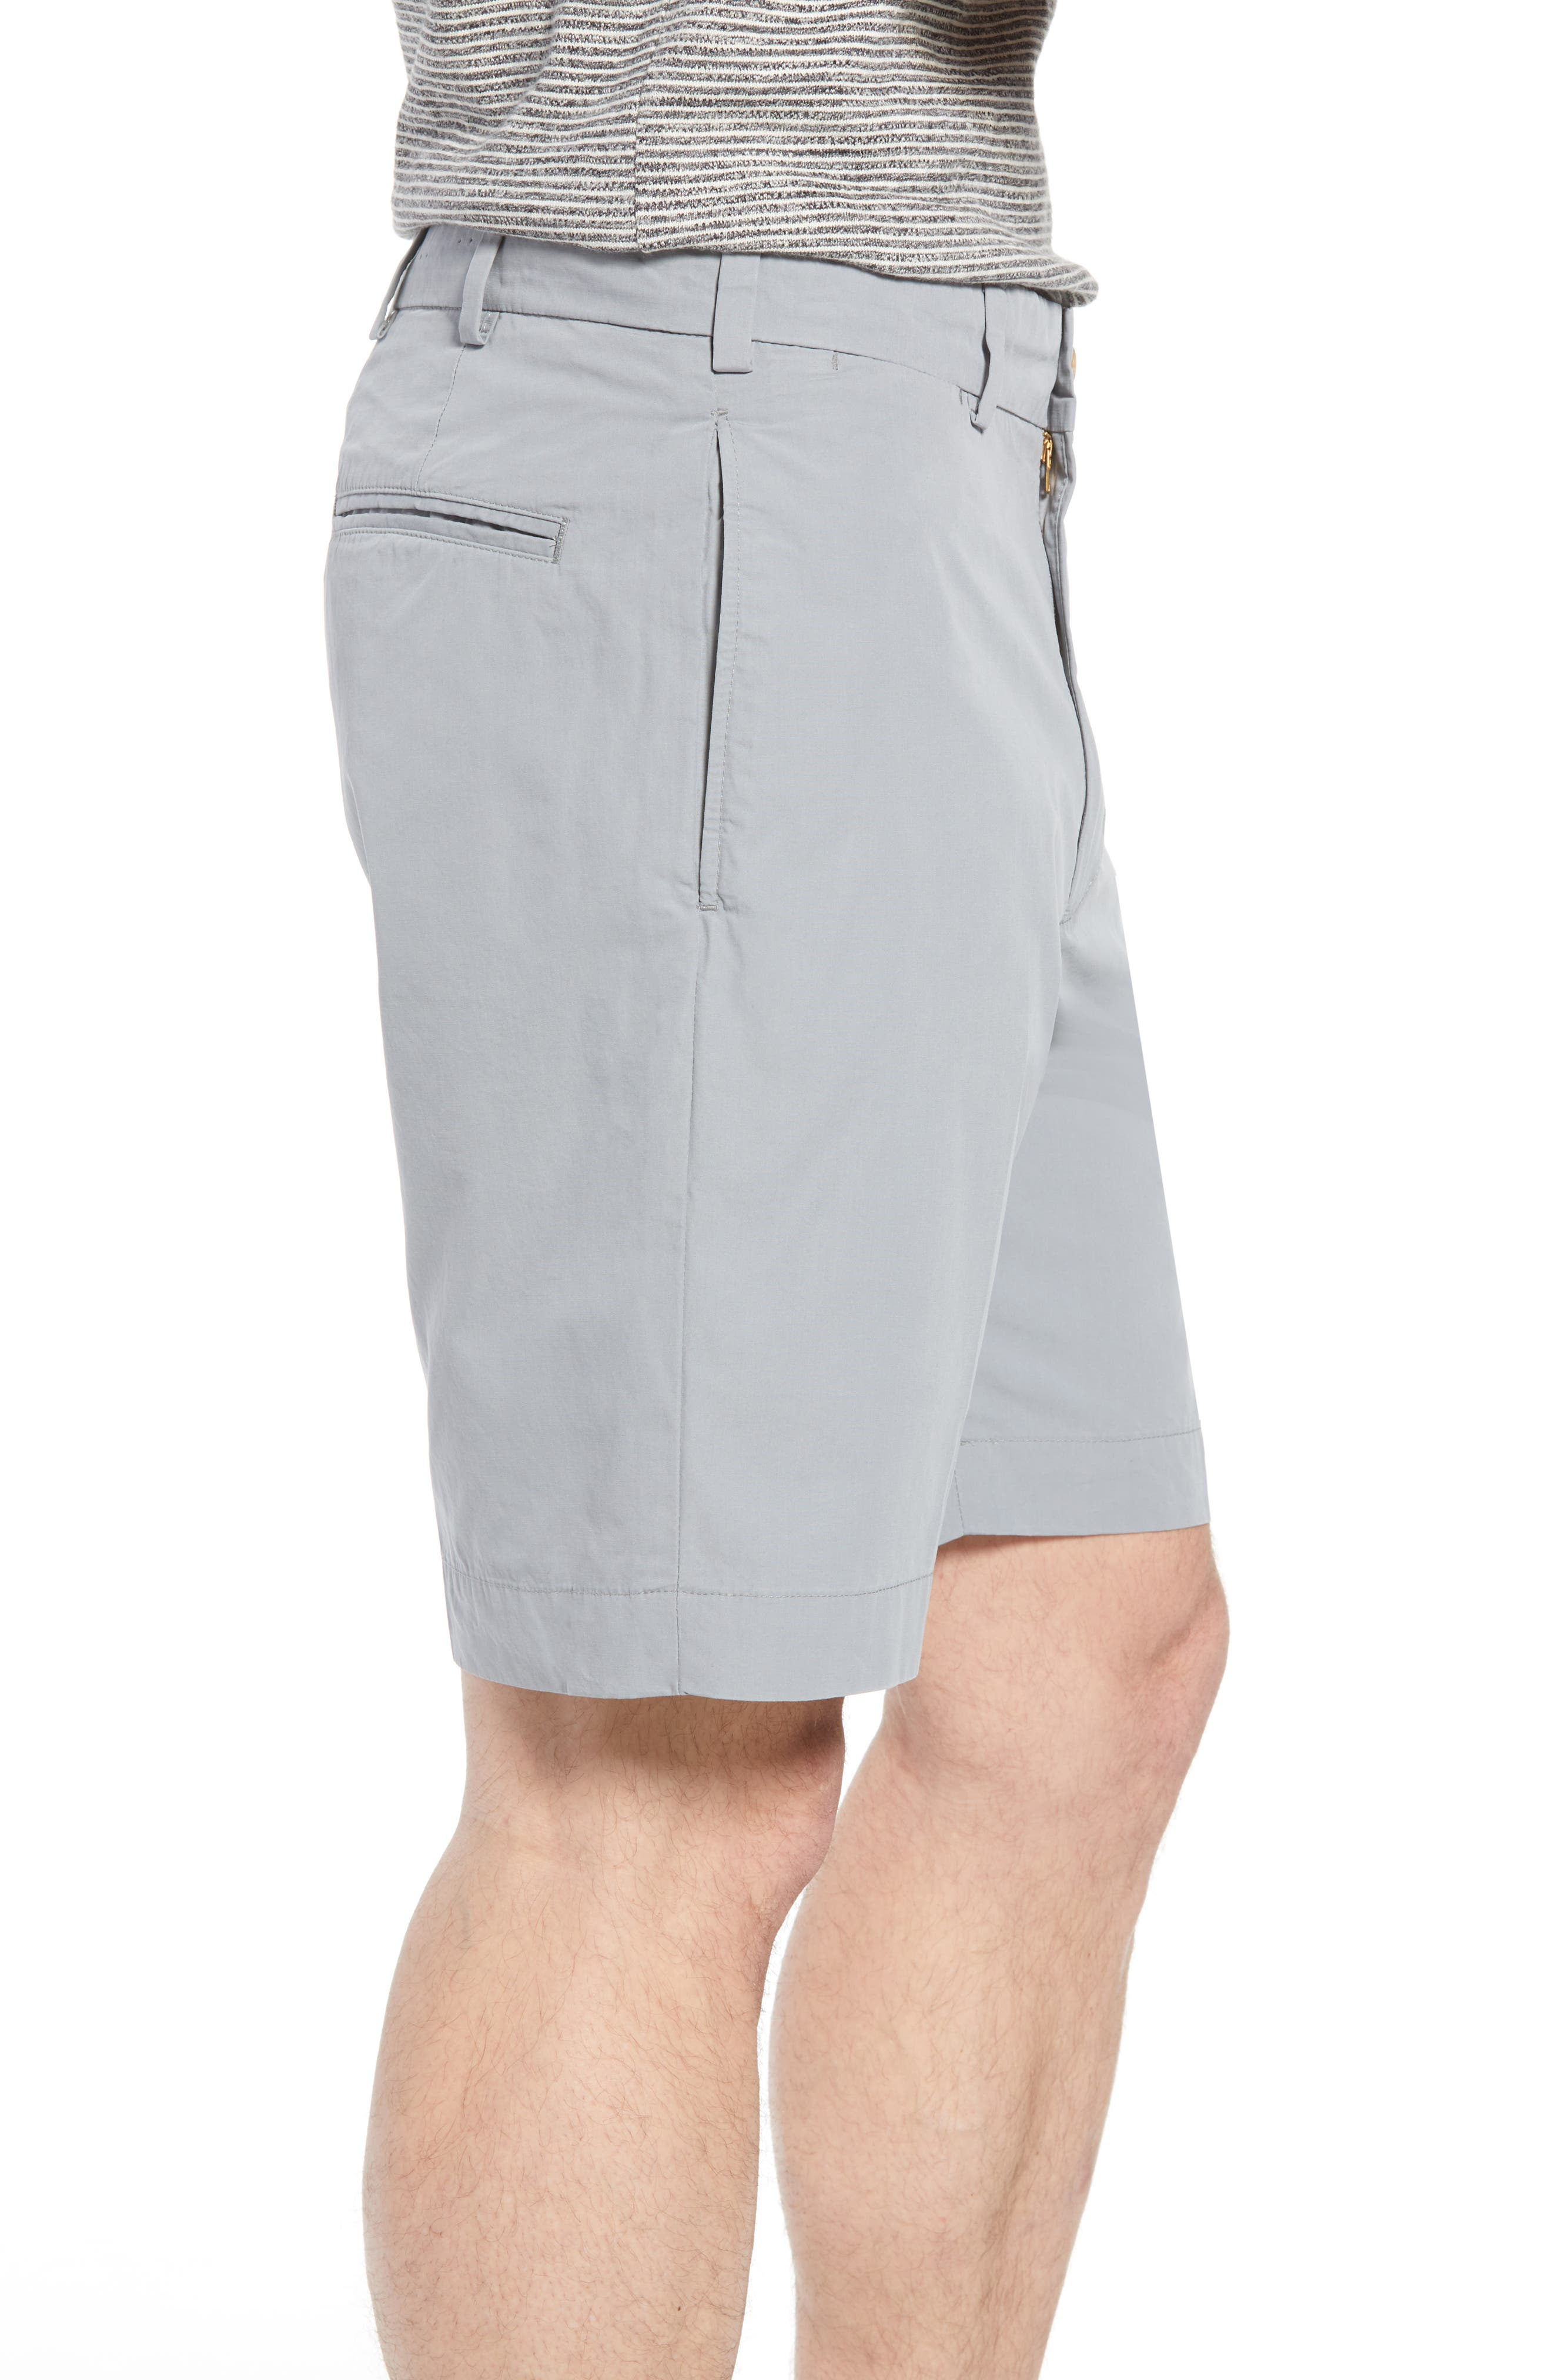 M2 Classic Fit Flat Front Tropical Cotton Poplin Shorts,                             Alternate thumbnail 3, color,                             Nickel